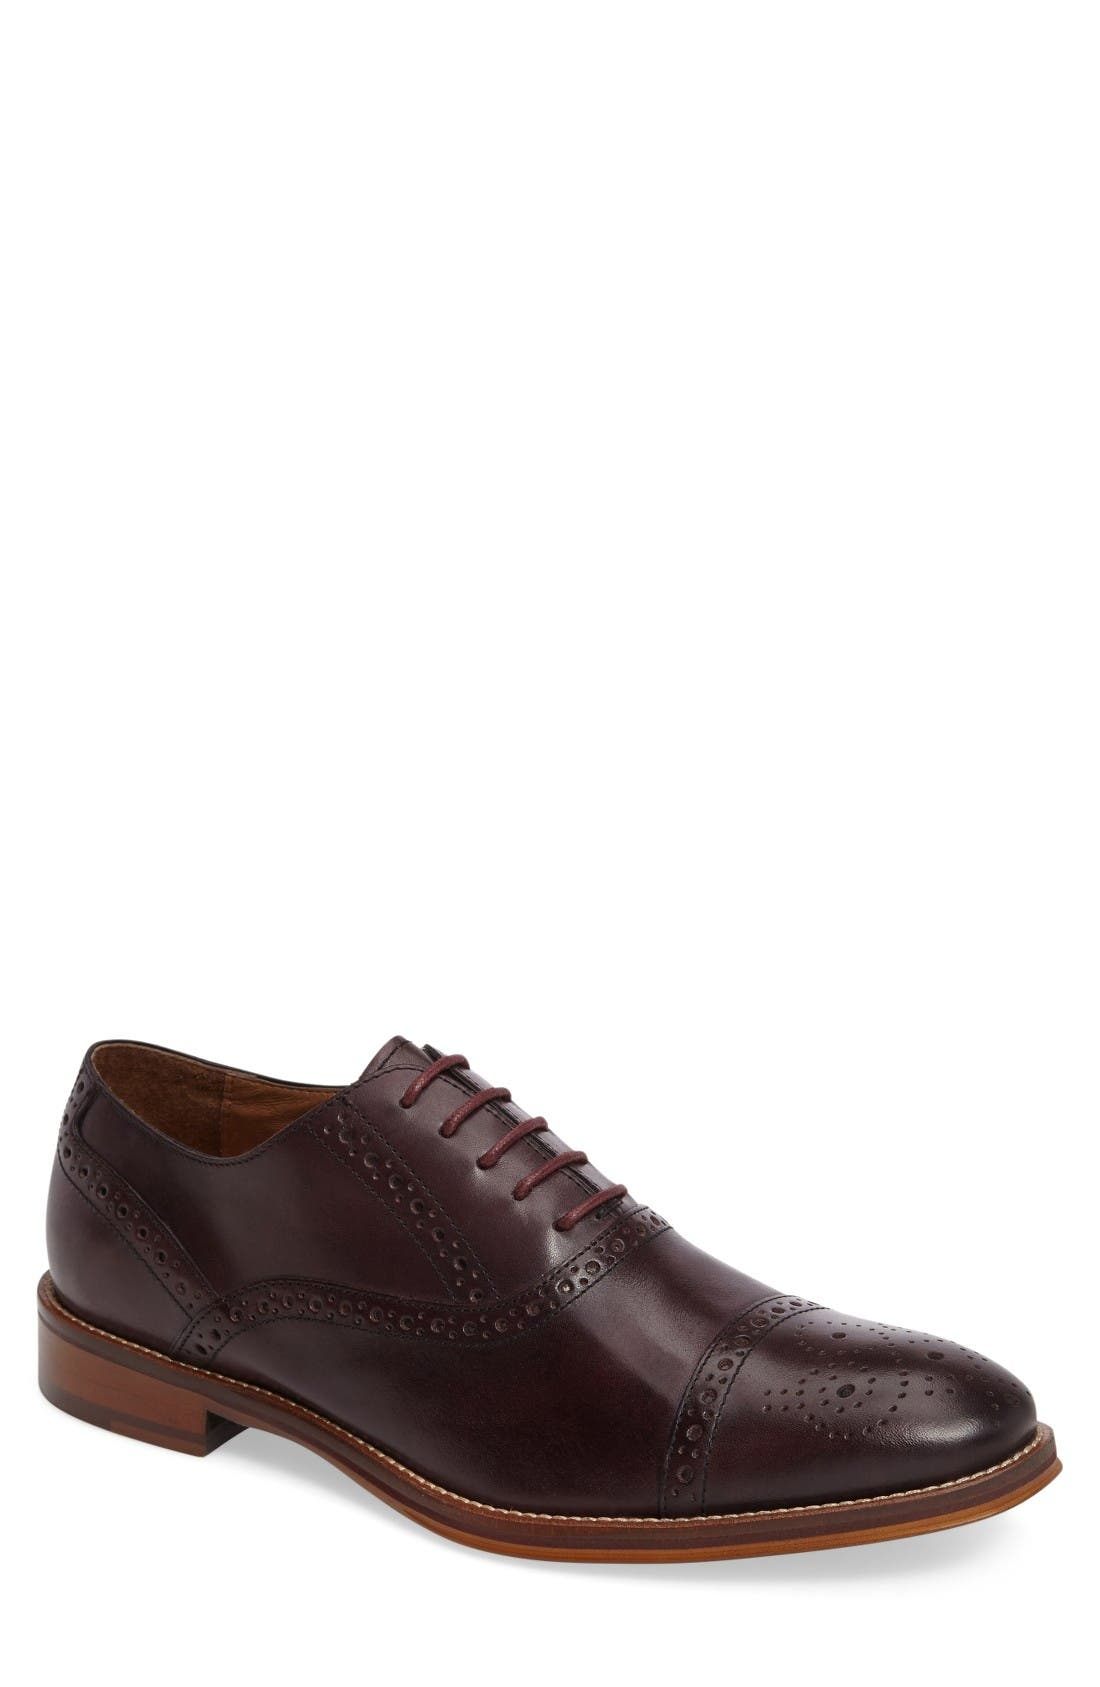 Main Image - Johnston & Murphy Conard Cap Toe Oxford (Men)